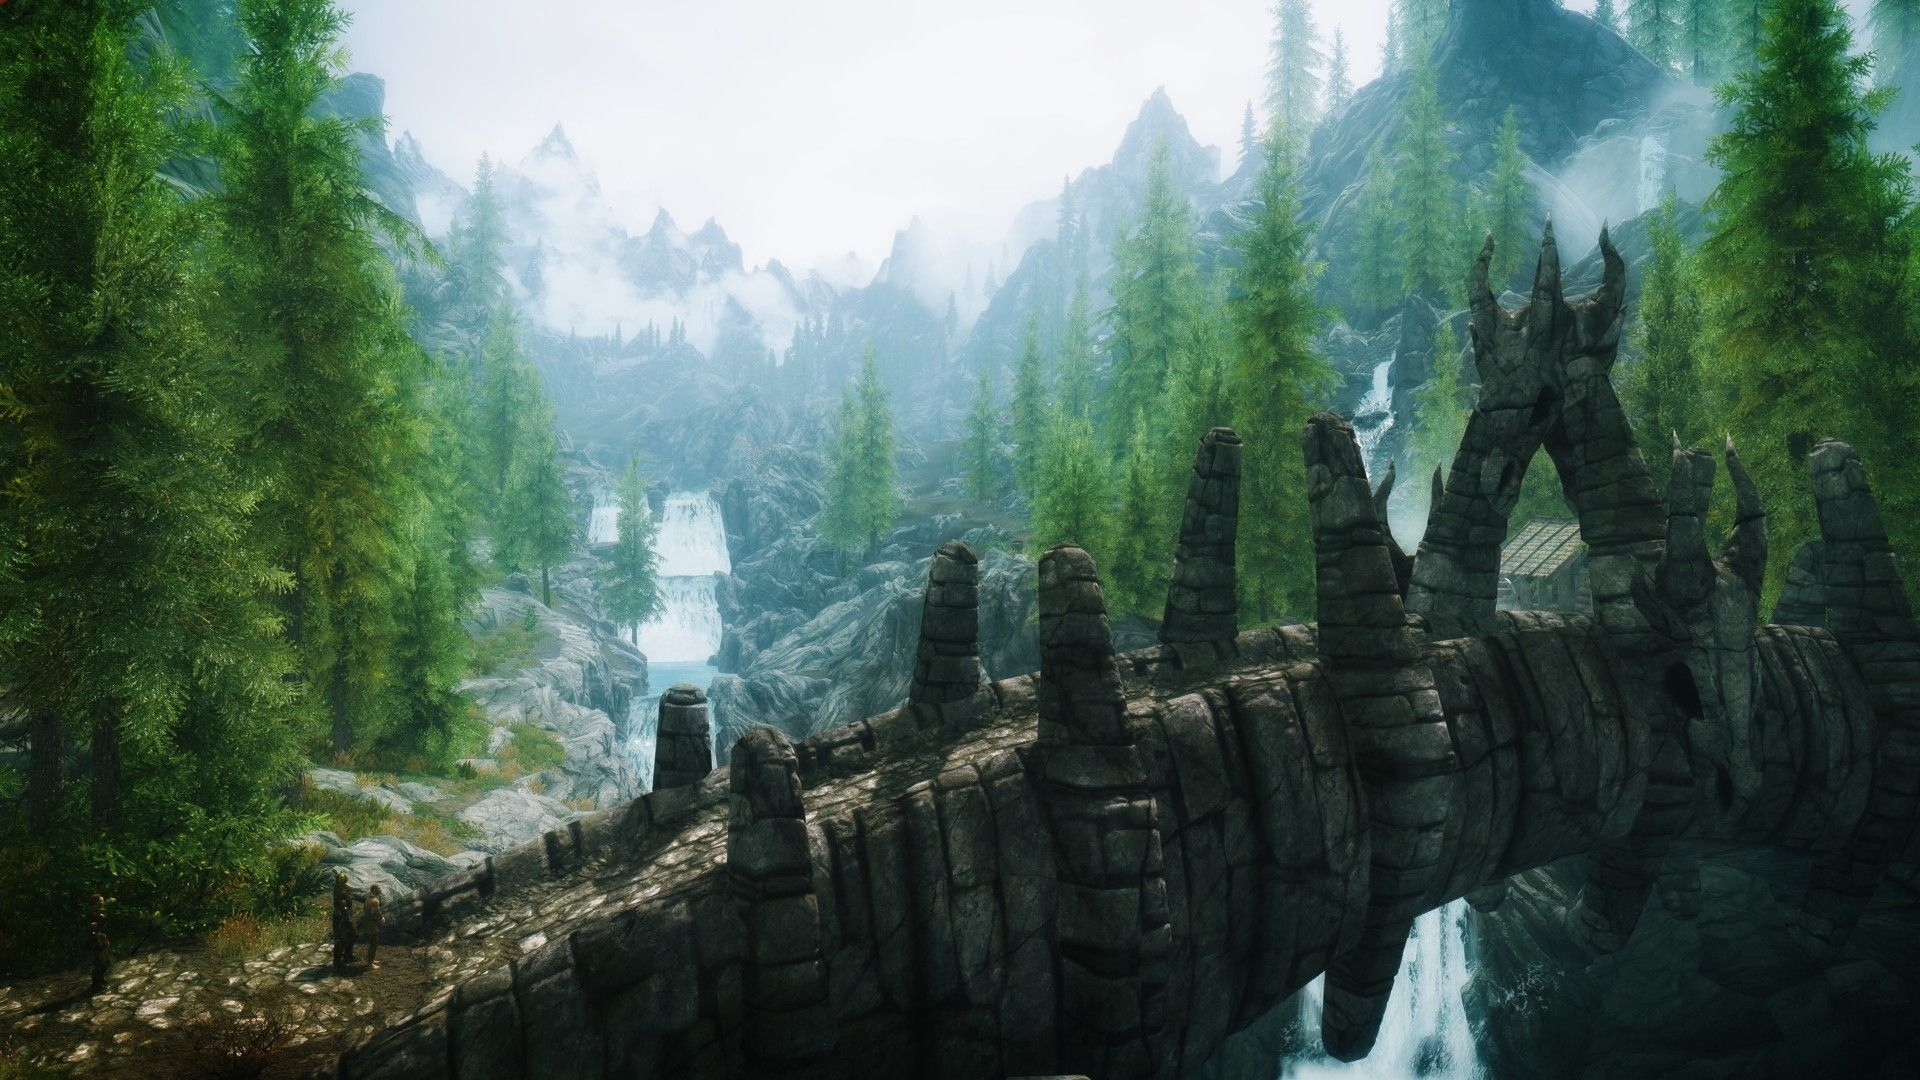 Title Skyrim Computer Backgrounds Group 1920x1080 Wallpapers 44 Dimension 1920 X 1080 File Type JPG JPEG